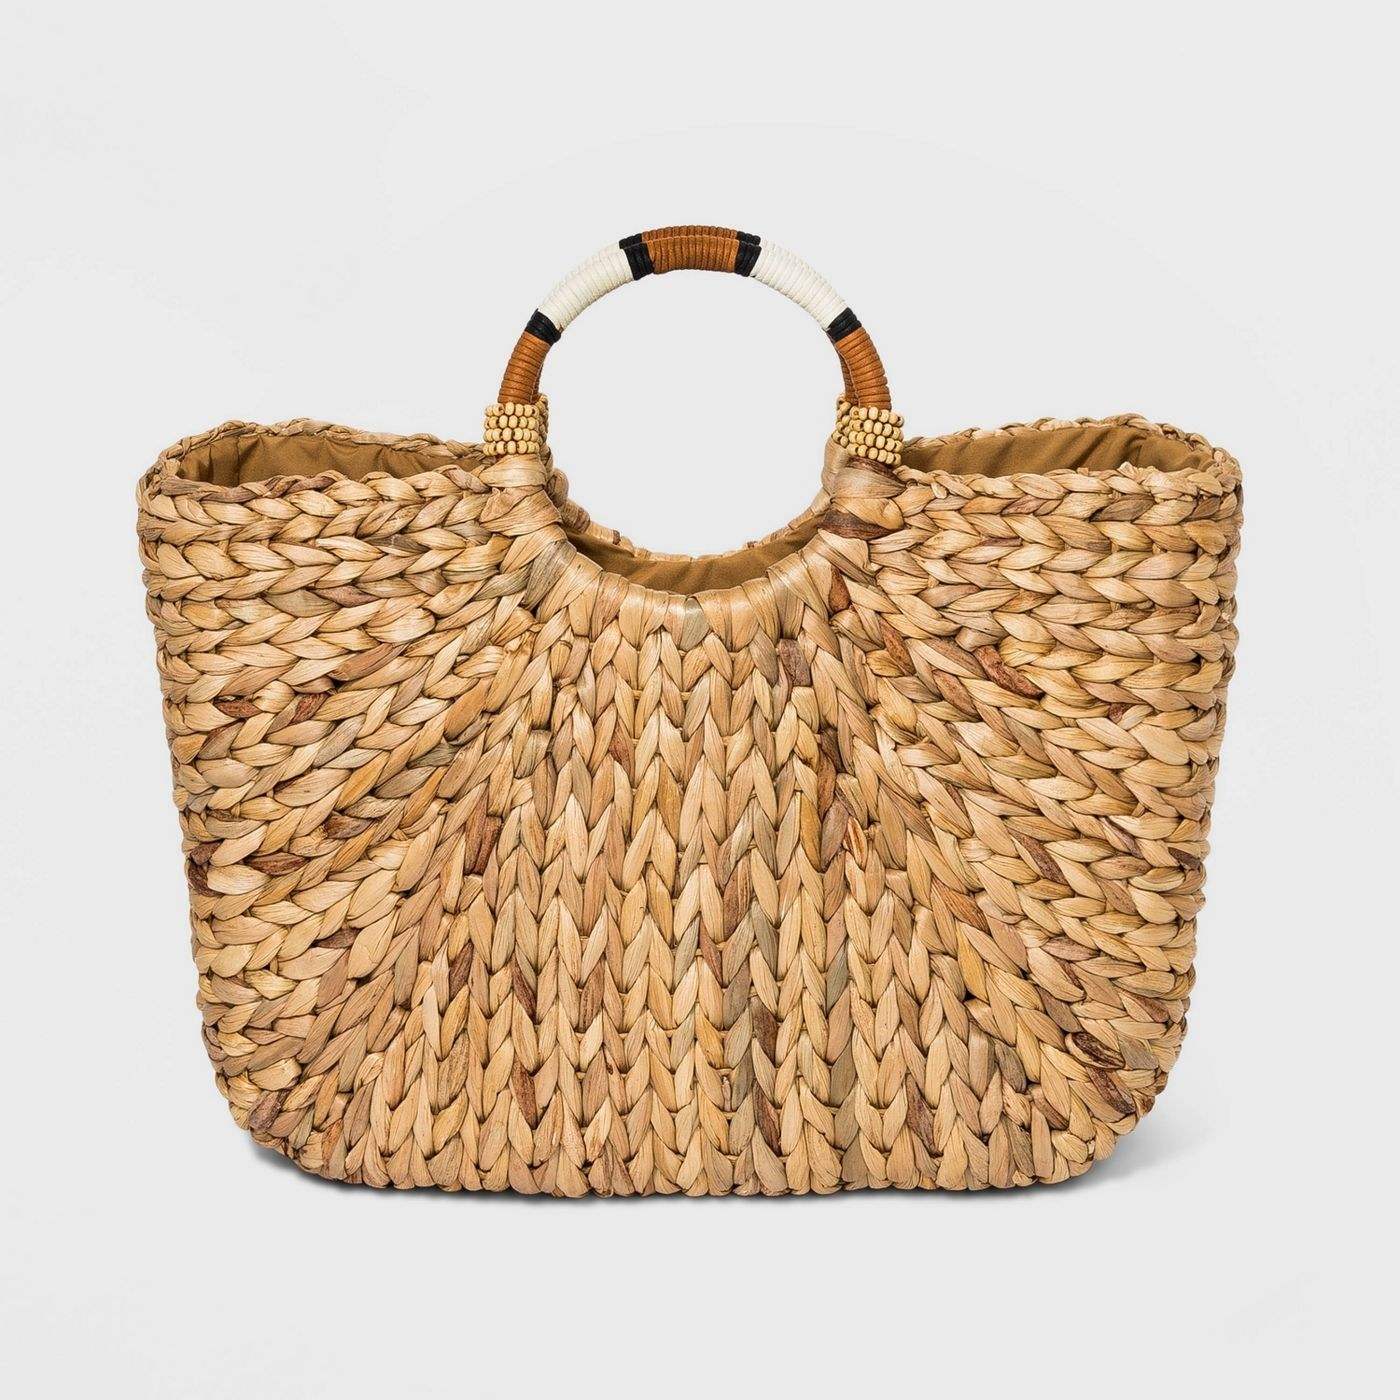 square-shaped braided wicker basket with circle handle